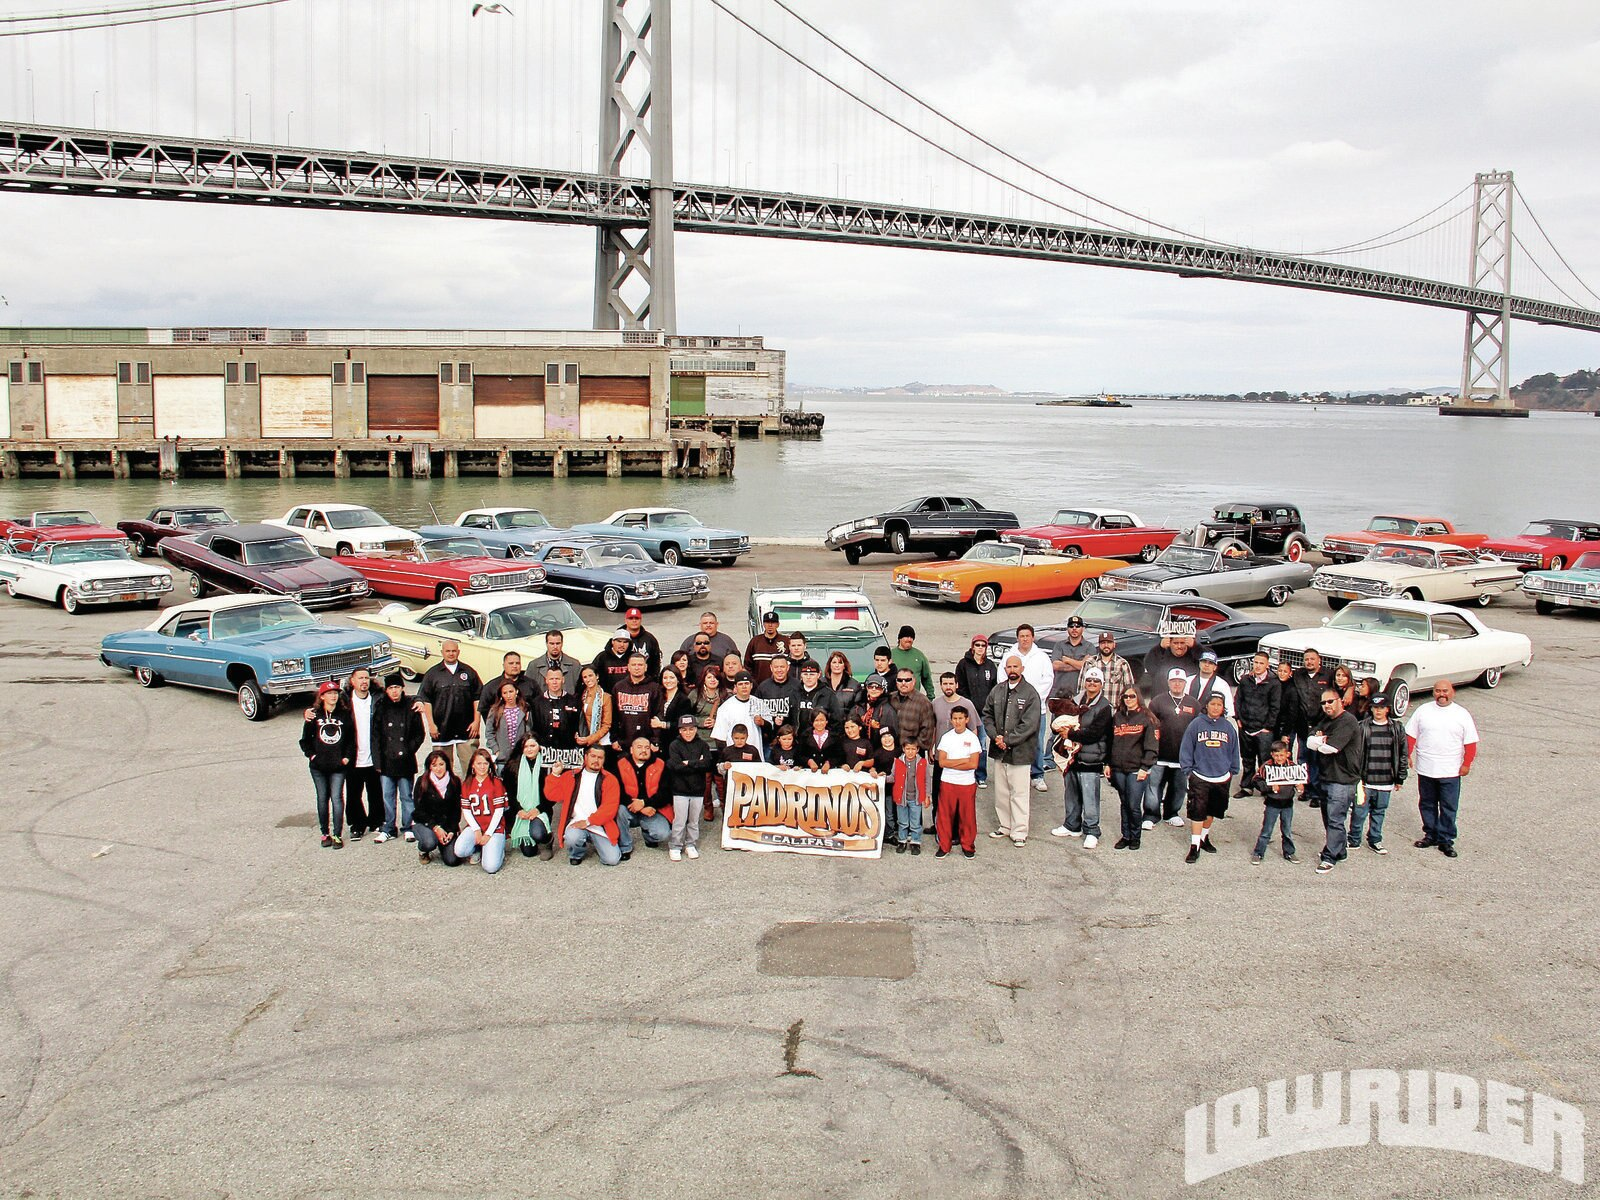 1205-lrmp-01-o-pardinos-car-club-group-picture1